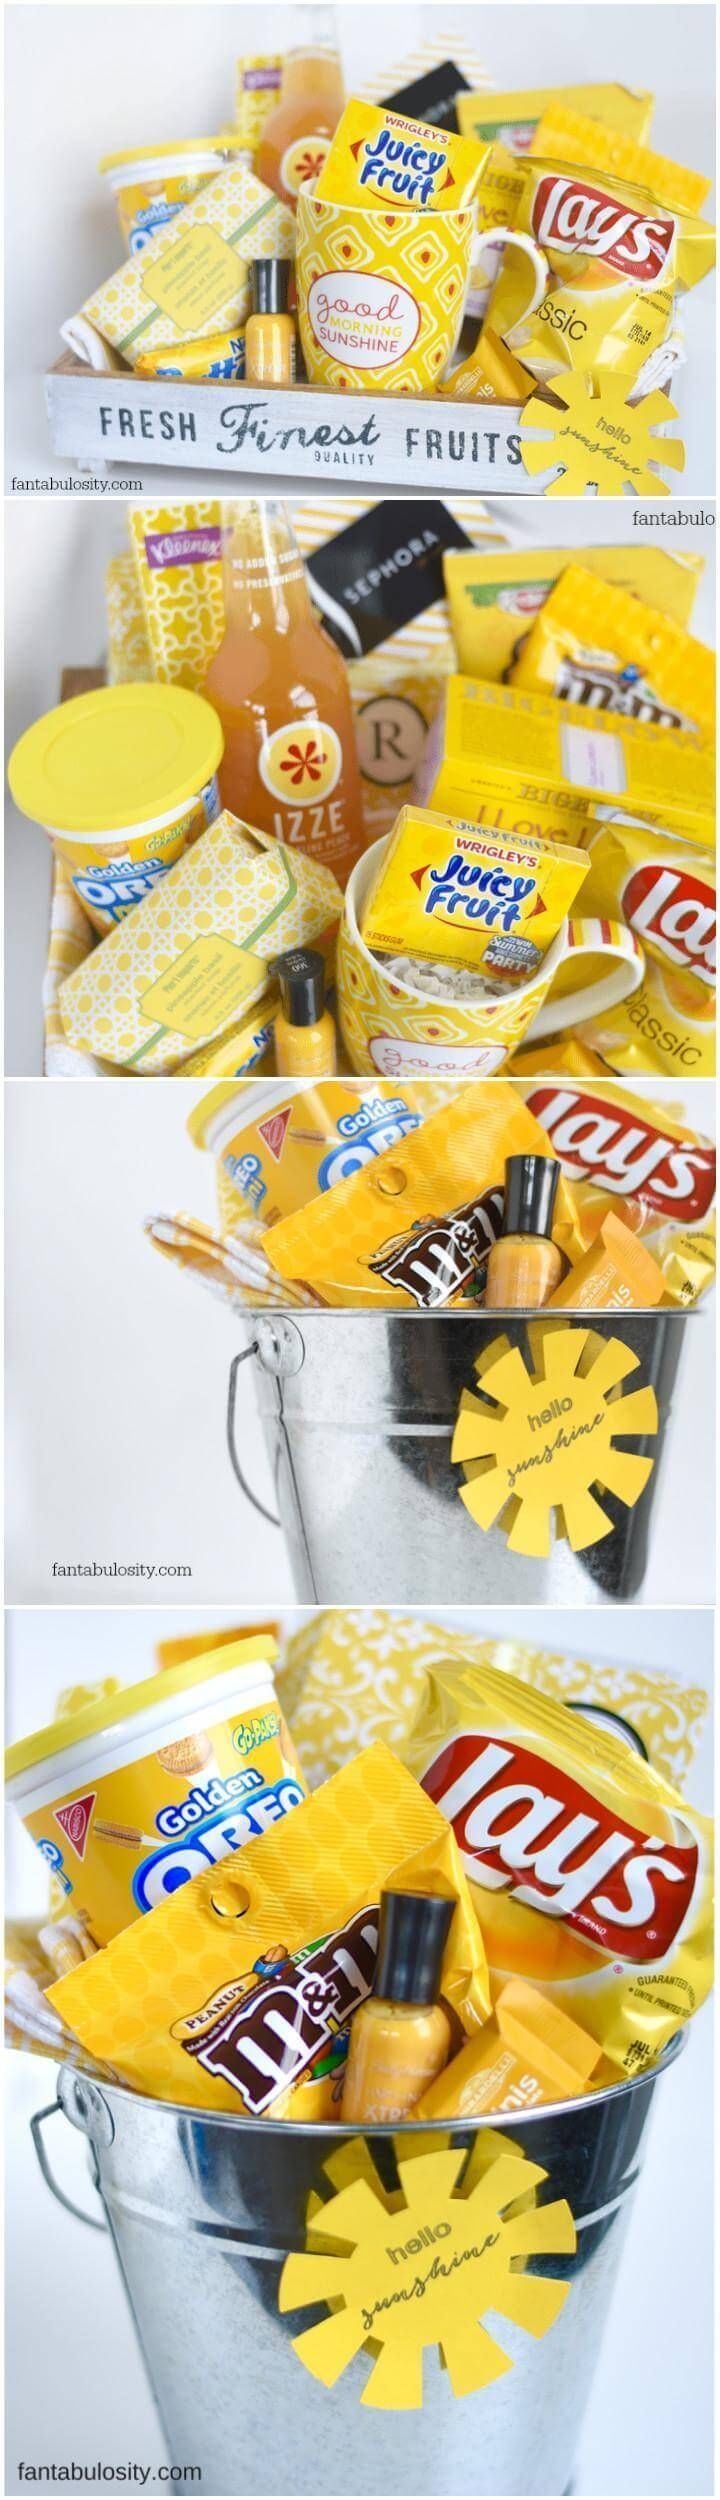 70 Inexpensive DIY Gift Basket Ideas DIY Gifts Page 4 of 14 DIY & Crafts #Gif…